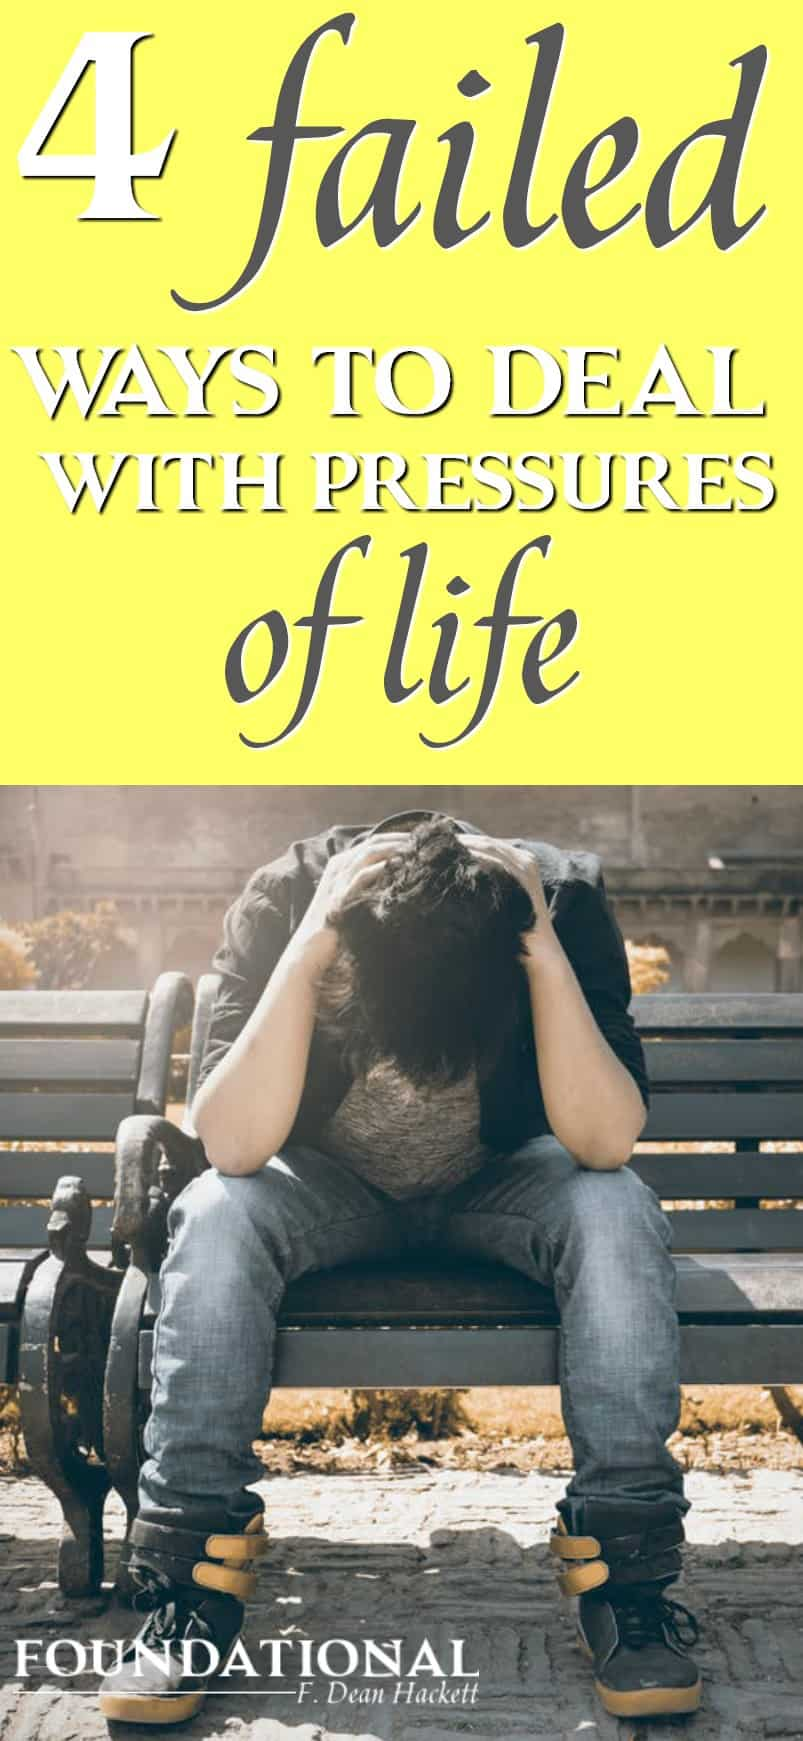 The way Christians deal with pressures of life is vital if they are going to live victorious Christian lives. #Christianliving #Bible #Spiritualgrowth #God #stress #kingdomofGod